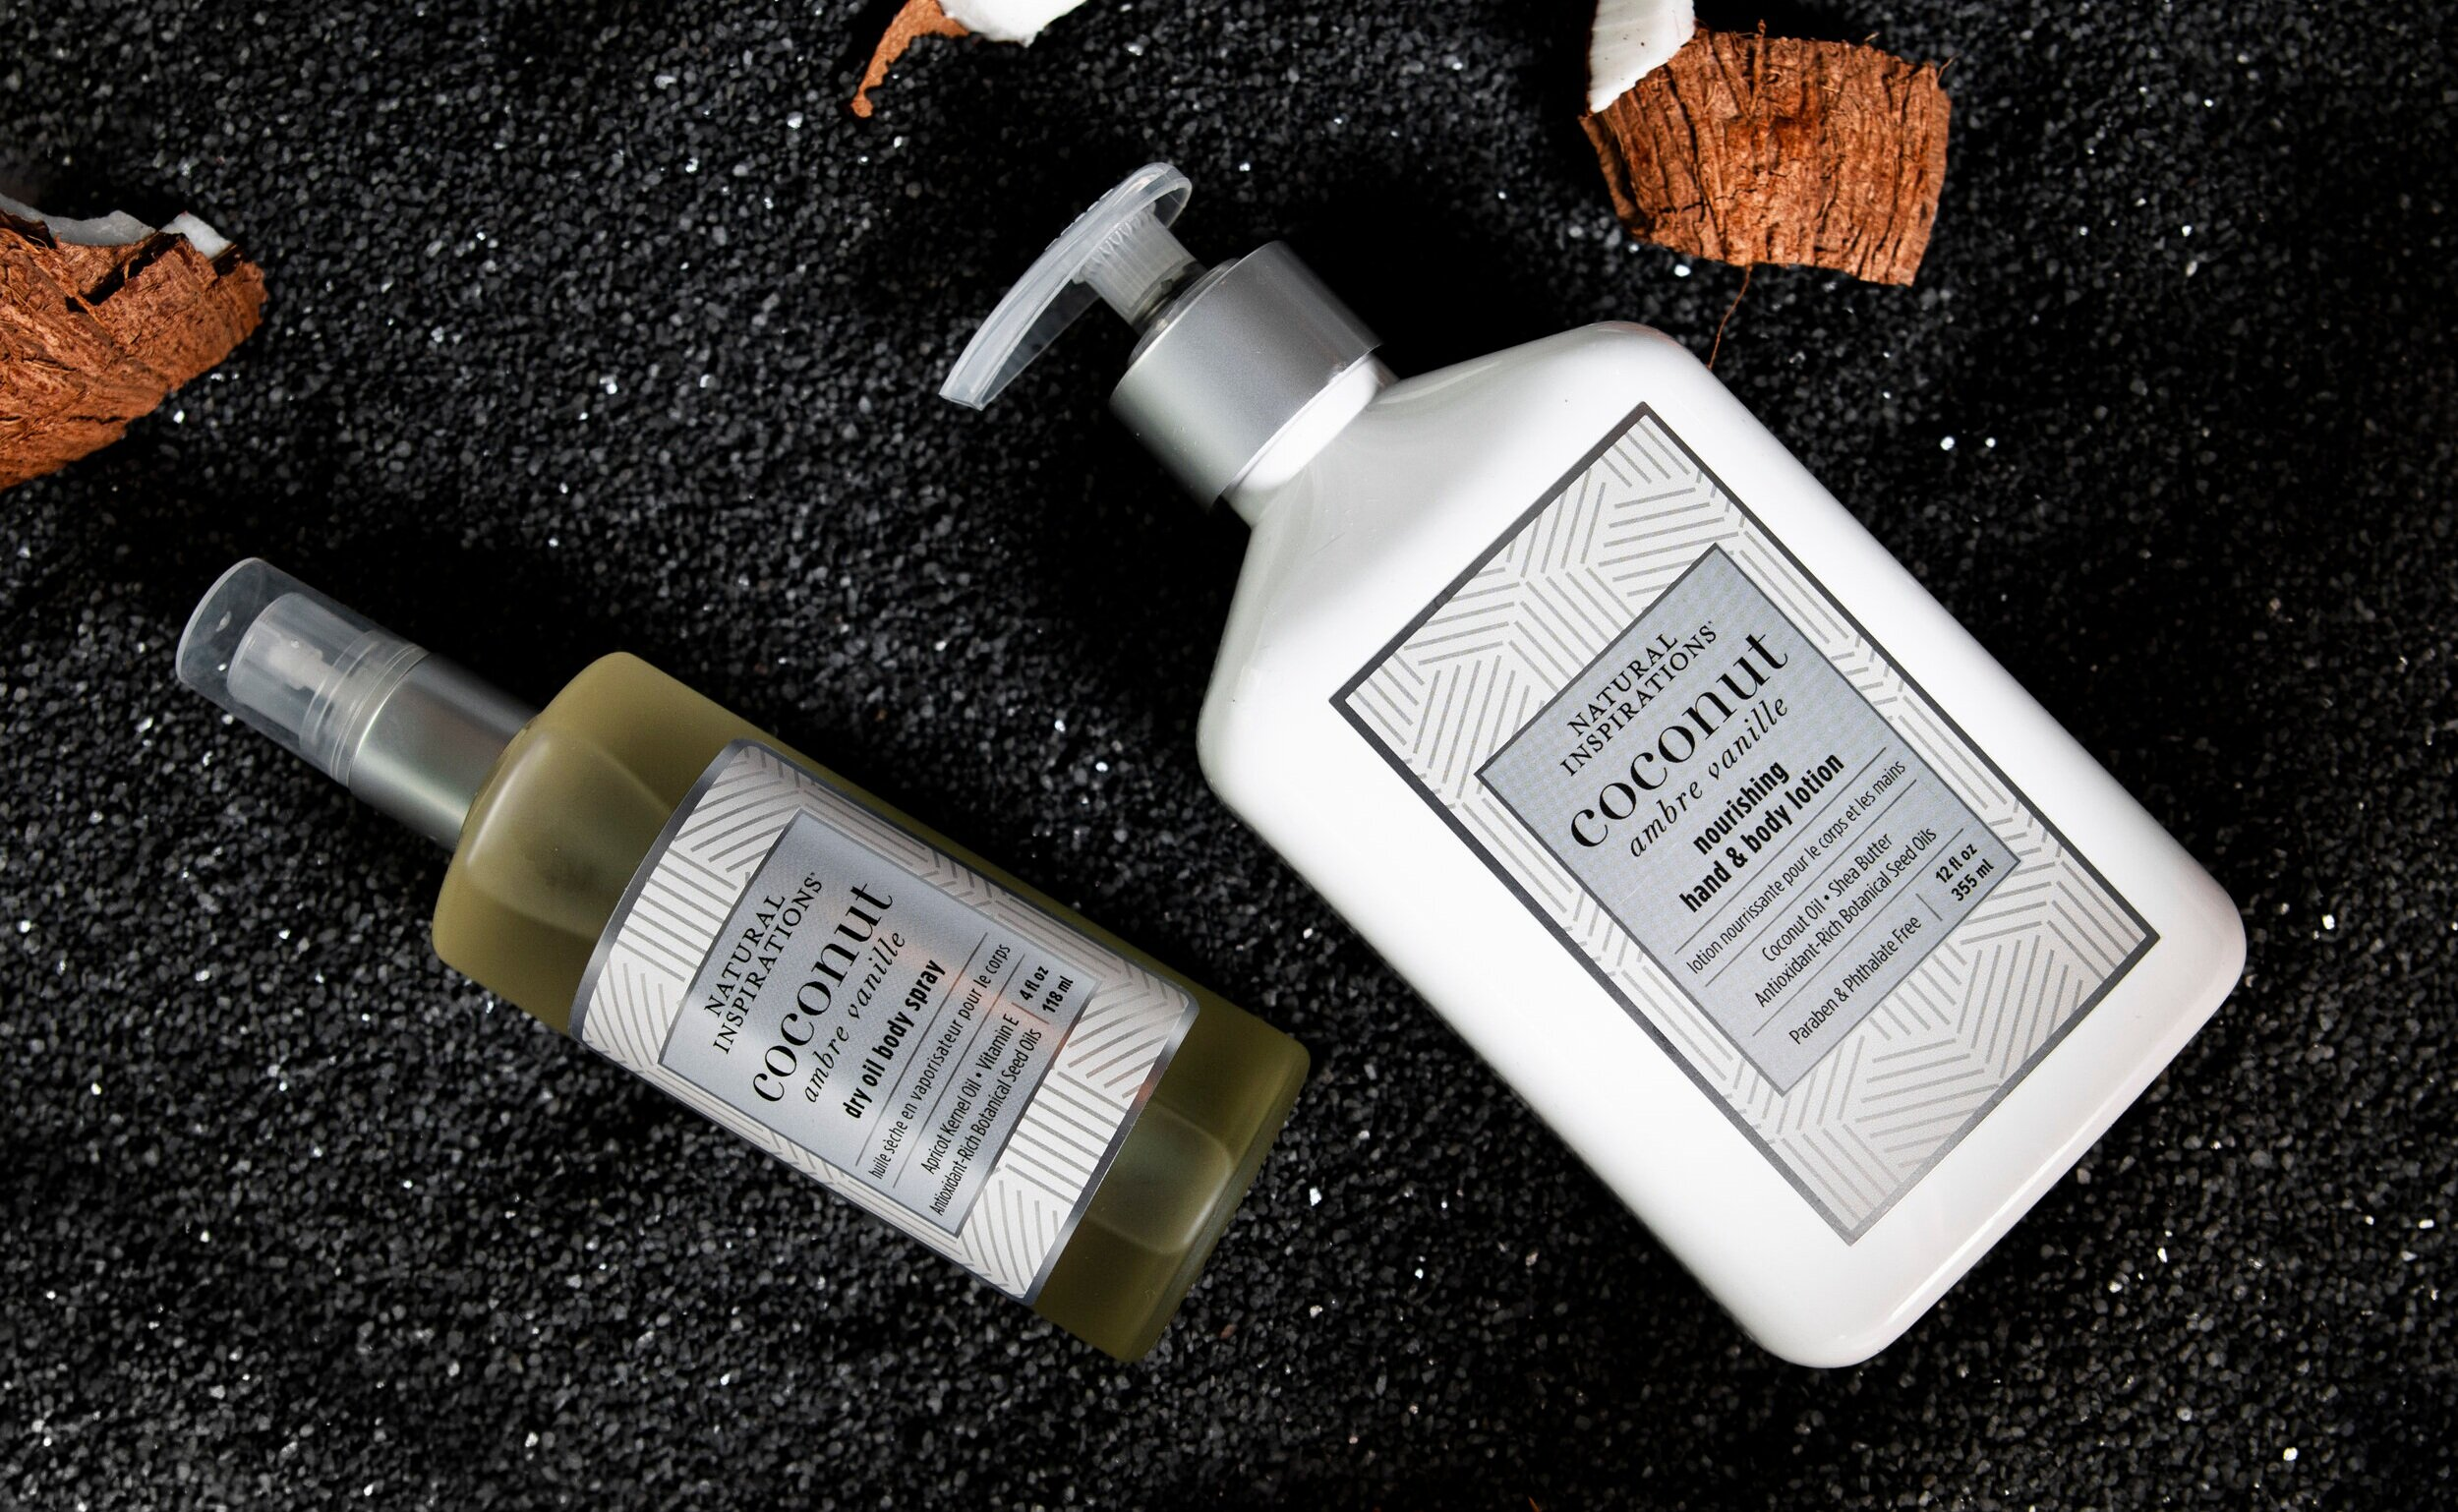 Nourishing Hand & Body Lotion - Quench thirsty skin with Coconut Oil, Shea Butter & nourishing botanicals that hydrate, soften & soothe your skin, leaving it smooth & lightly scented with clean, fresh fragrances.